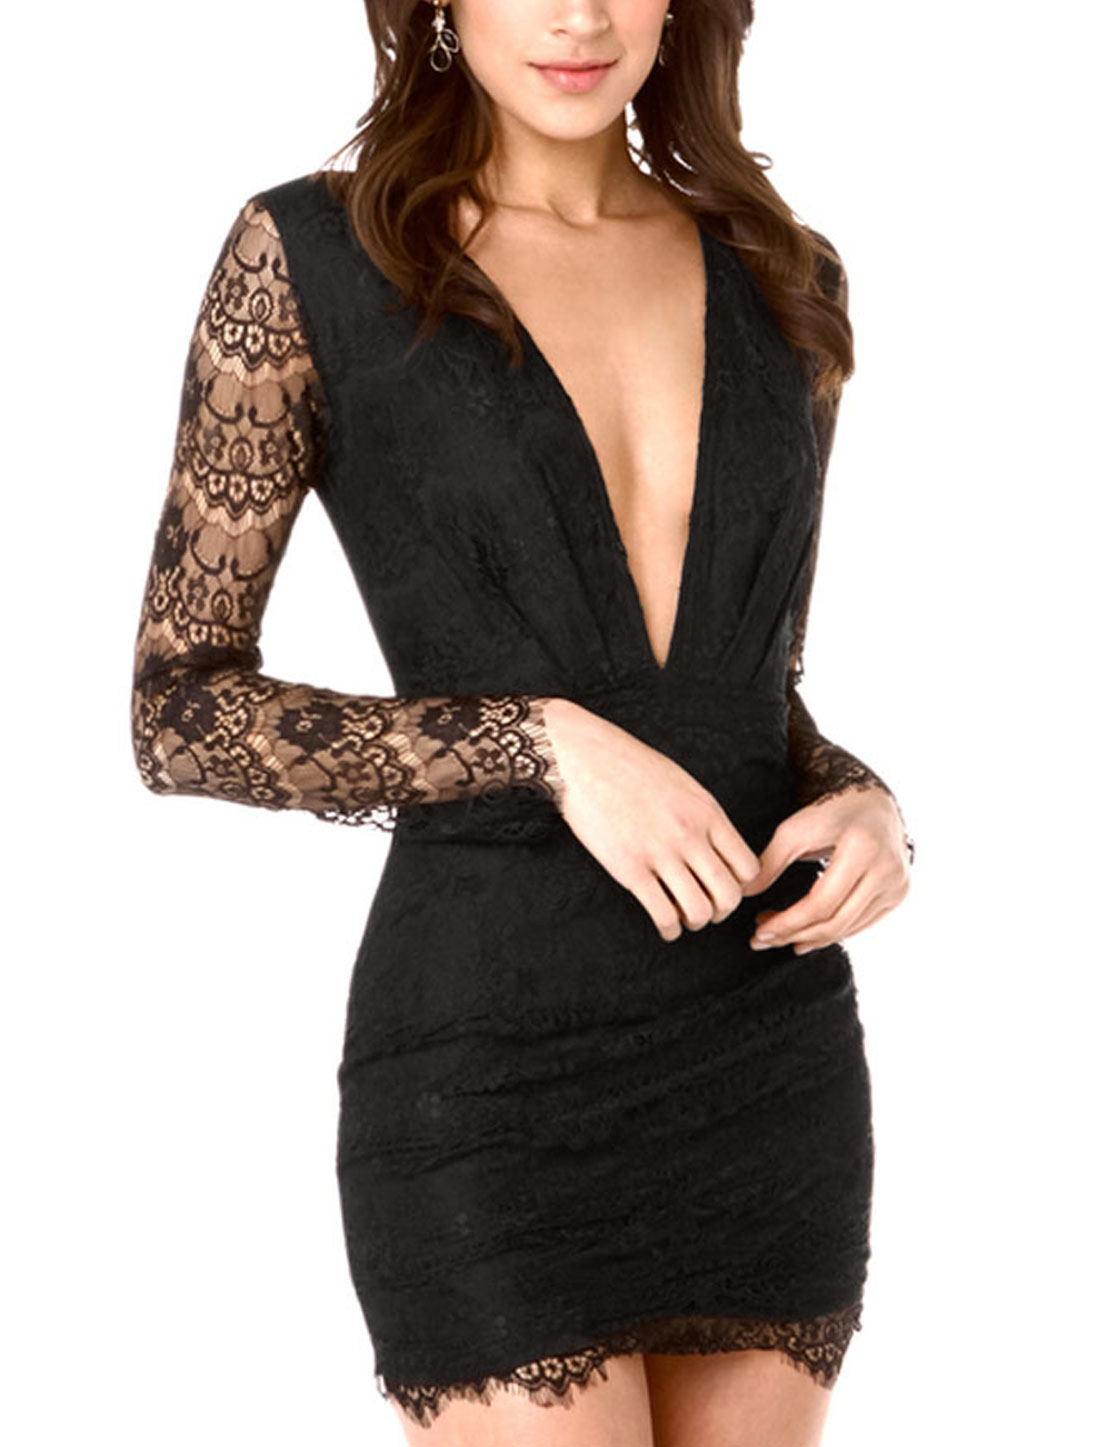 Ladies Deep V Neck Long Sleeves Zipper Back Lace Wiggle Dress Black L